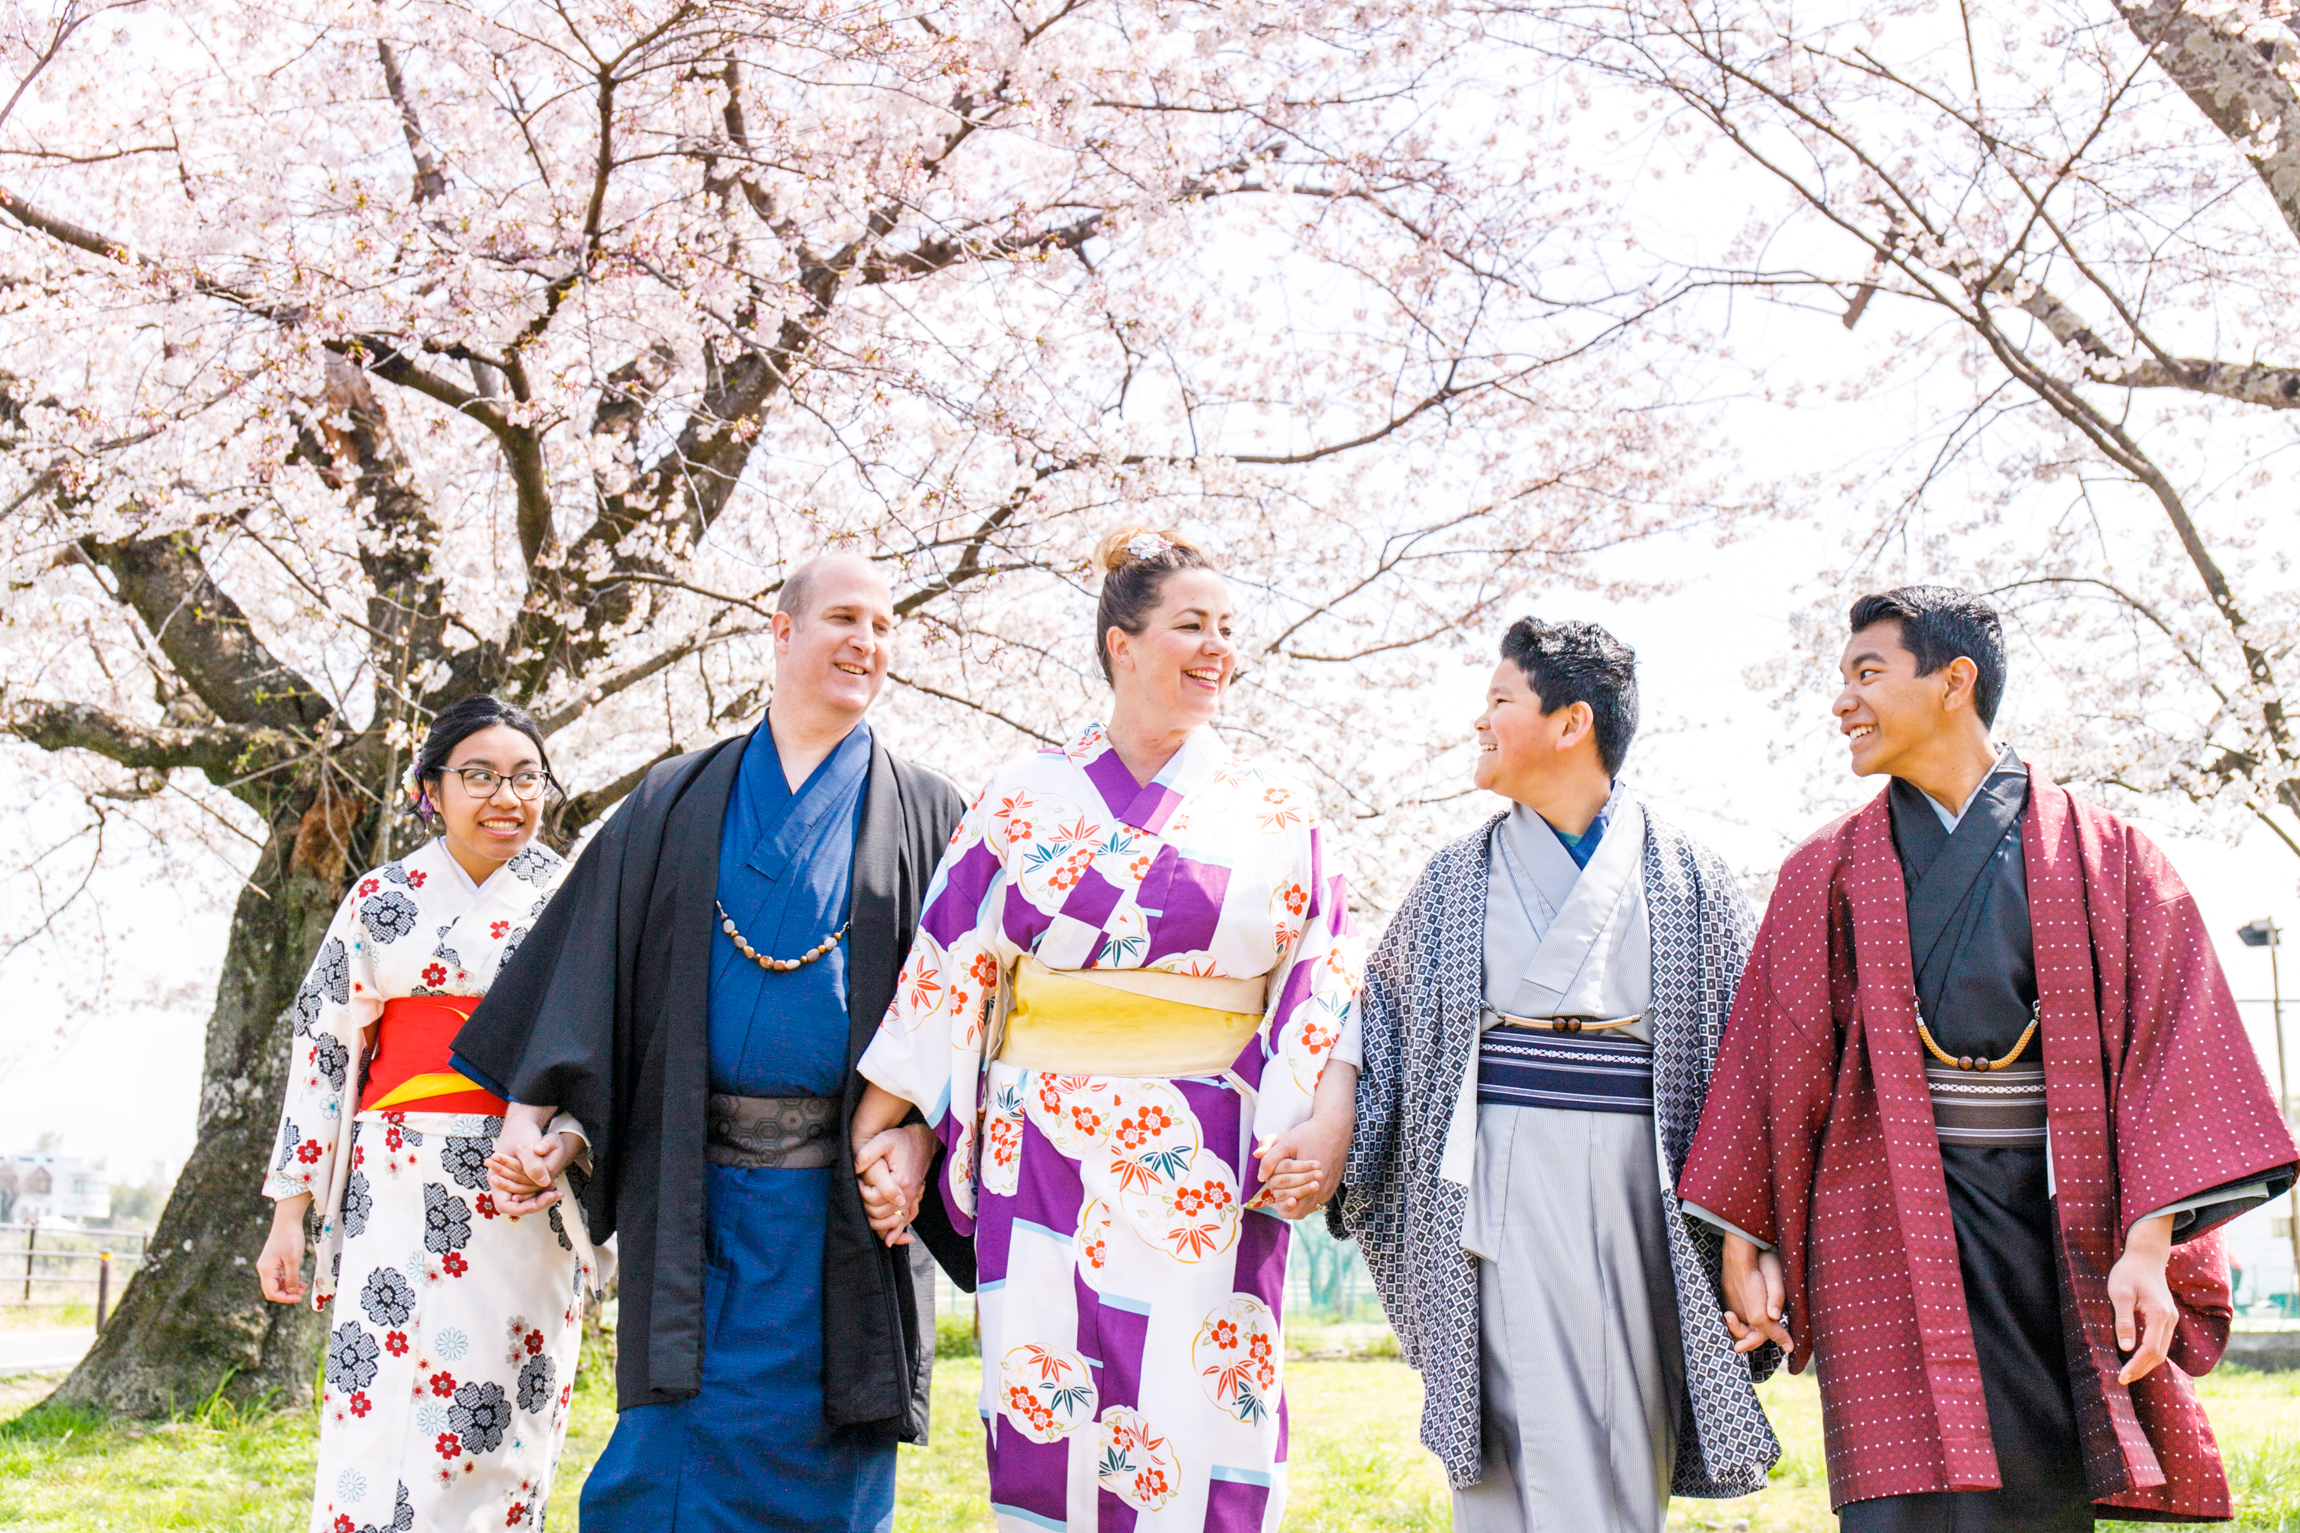 Photoshooting with Cherry blossoms in Osaka, Kyoto and Tokyo